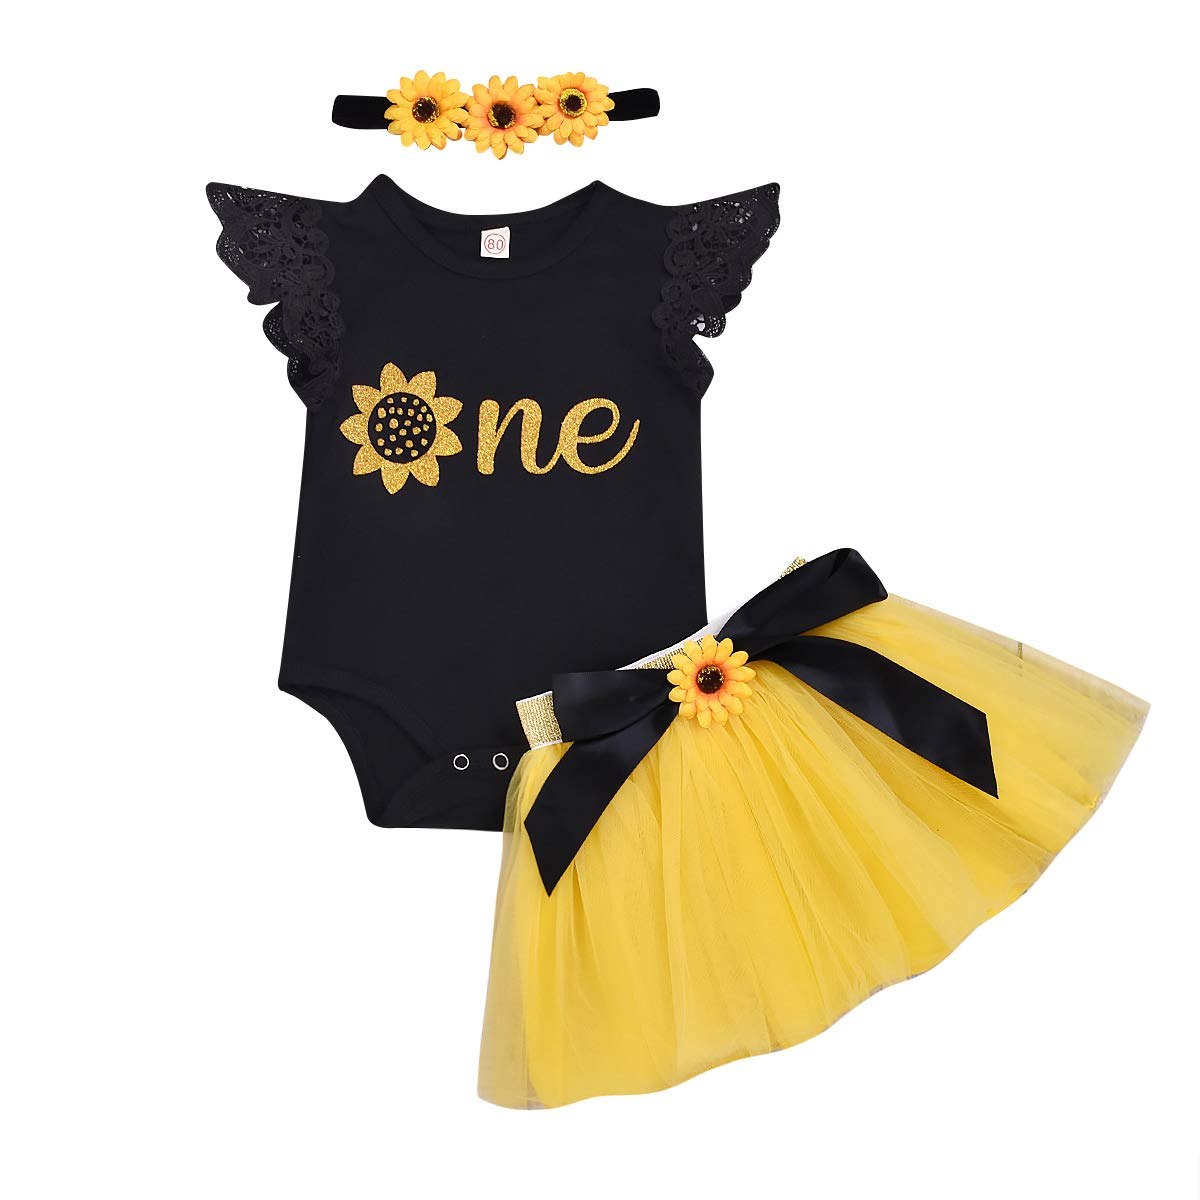 Infant Baby Girl Summer Clothes 1st Birthday Fly Sleeve Sunflower Romper + Tutu Tulle Skirt with Headband Outfit